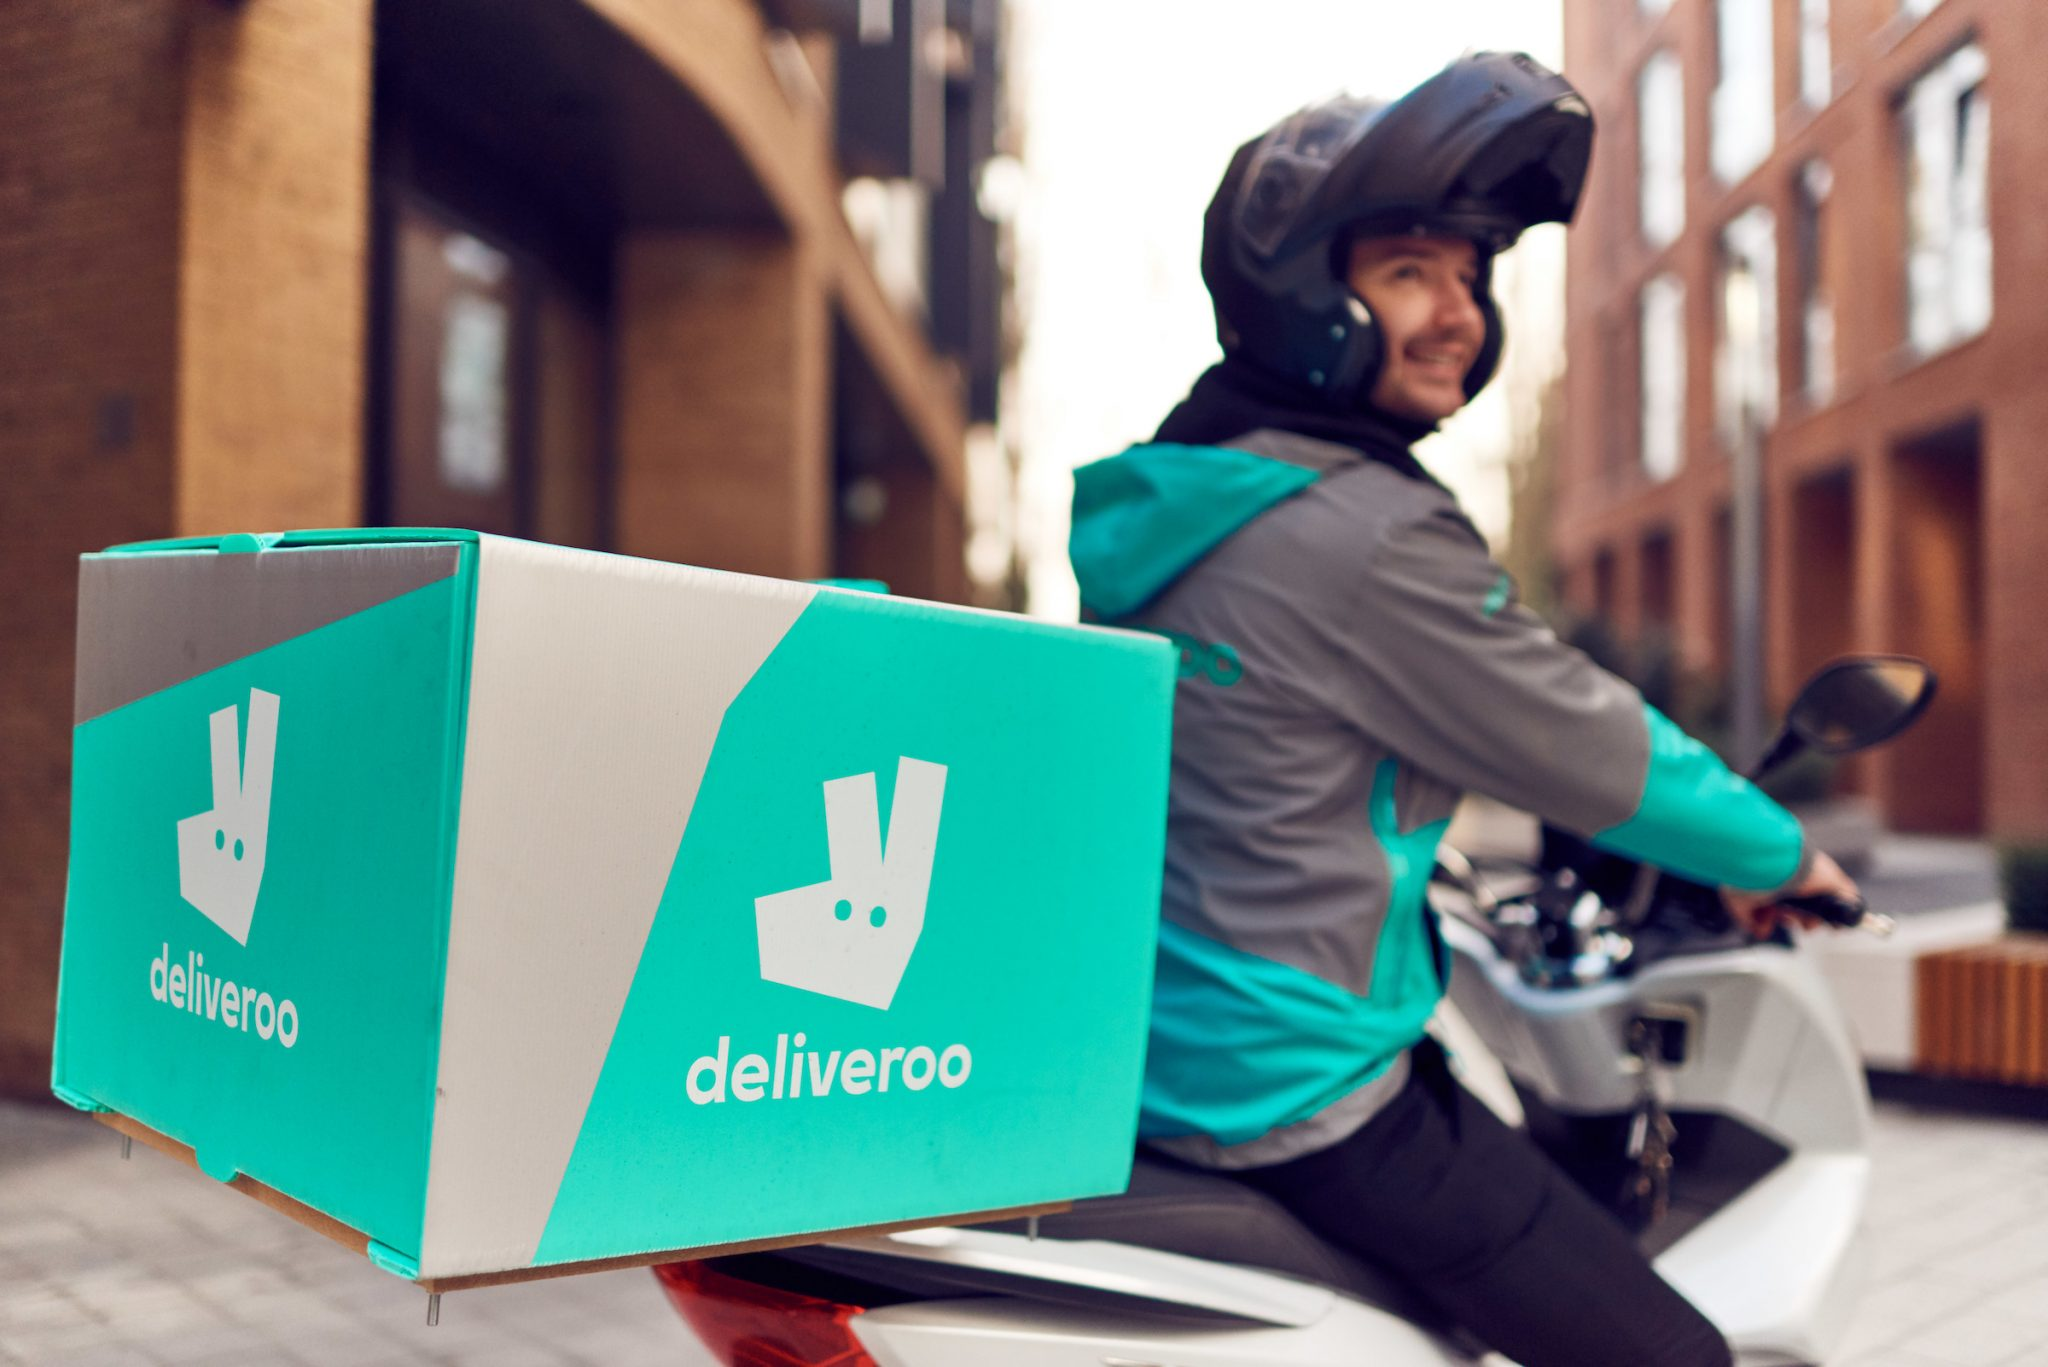 Deliveroo, the on-demand food delivery service, launches ...